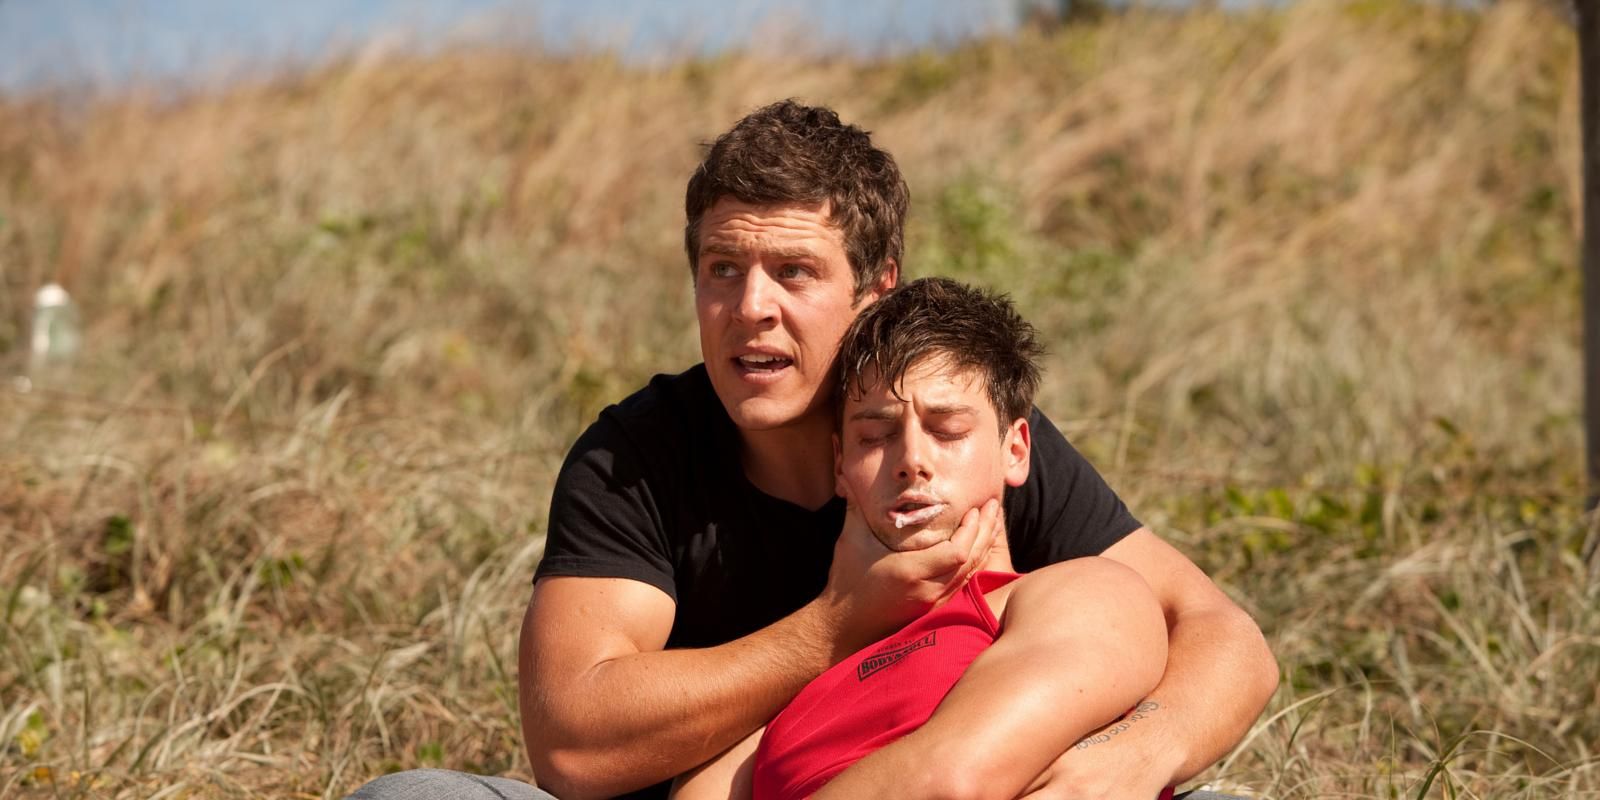 Who Is Casey From Home And Away Hookup